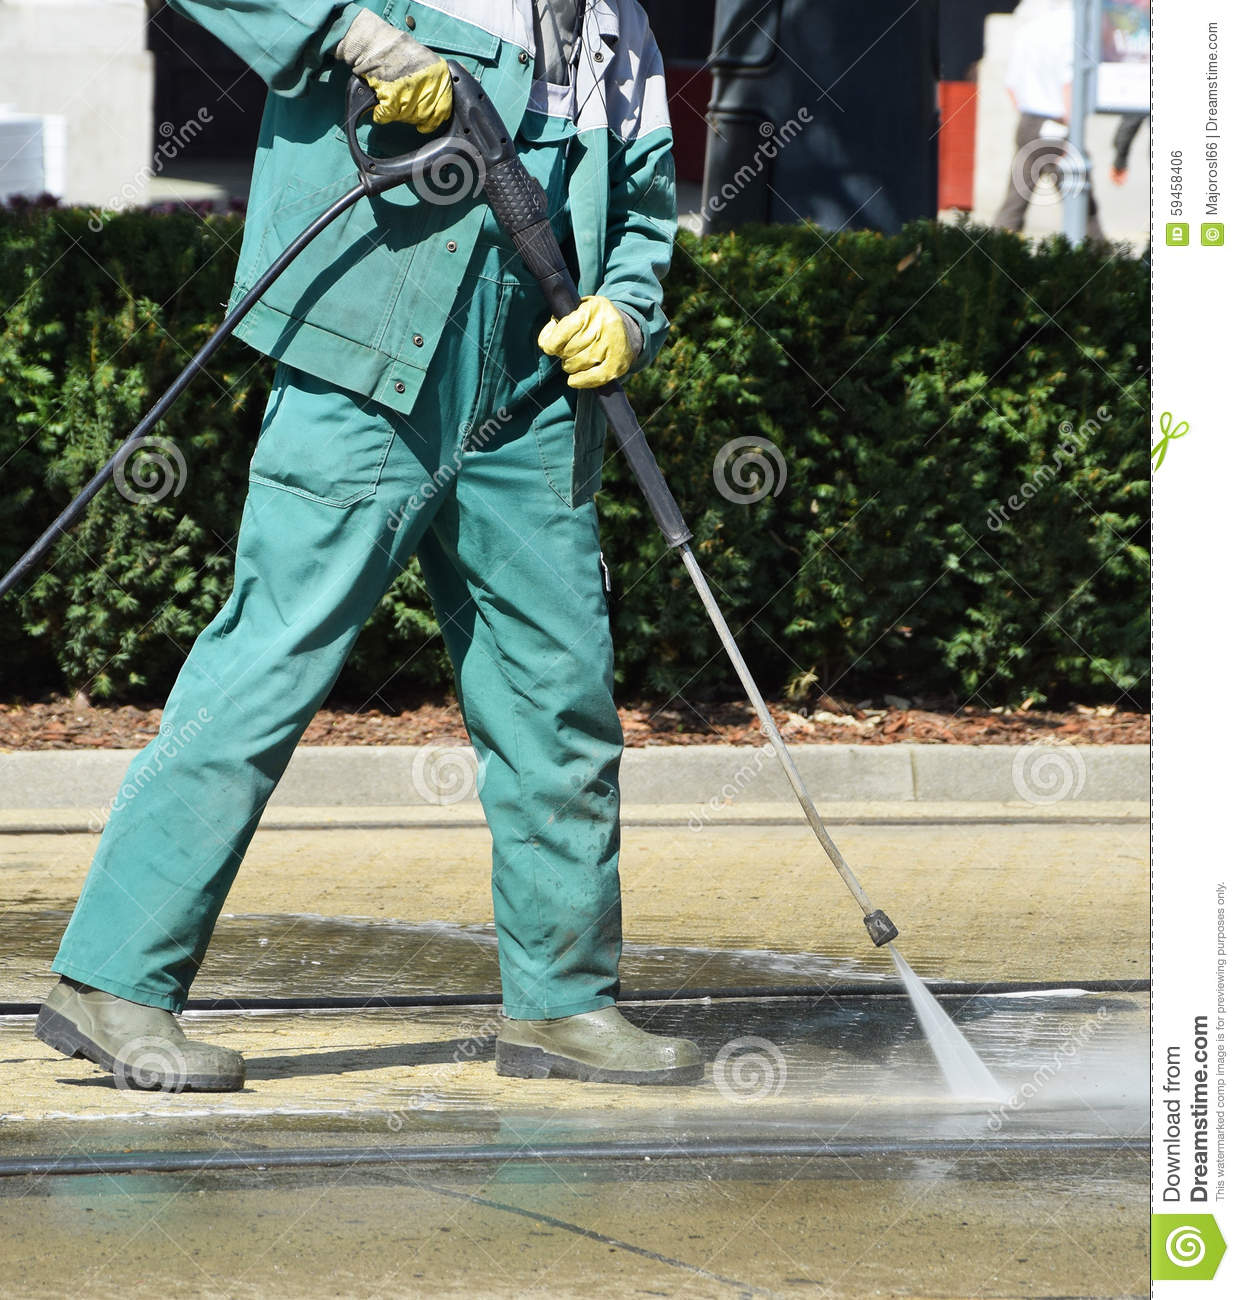 Street cleaner is working stock photo. Image of worker - 59458406